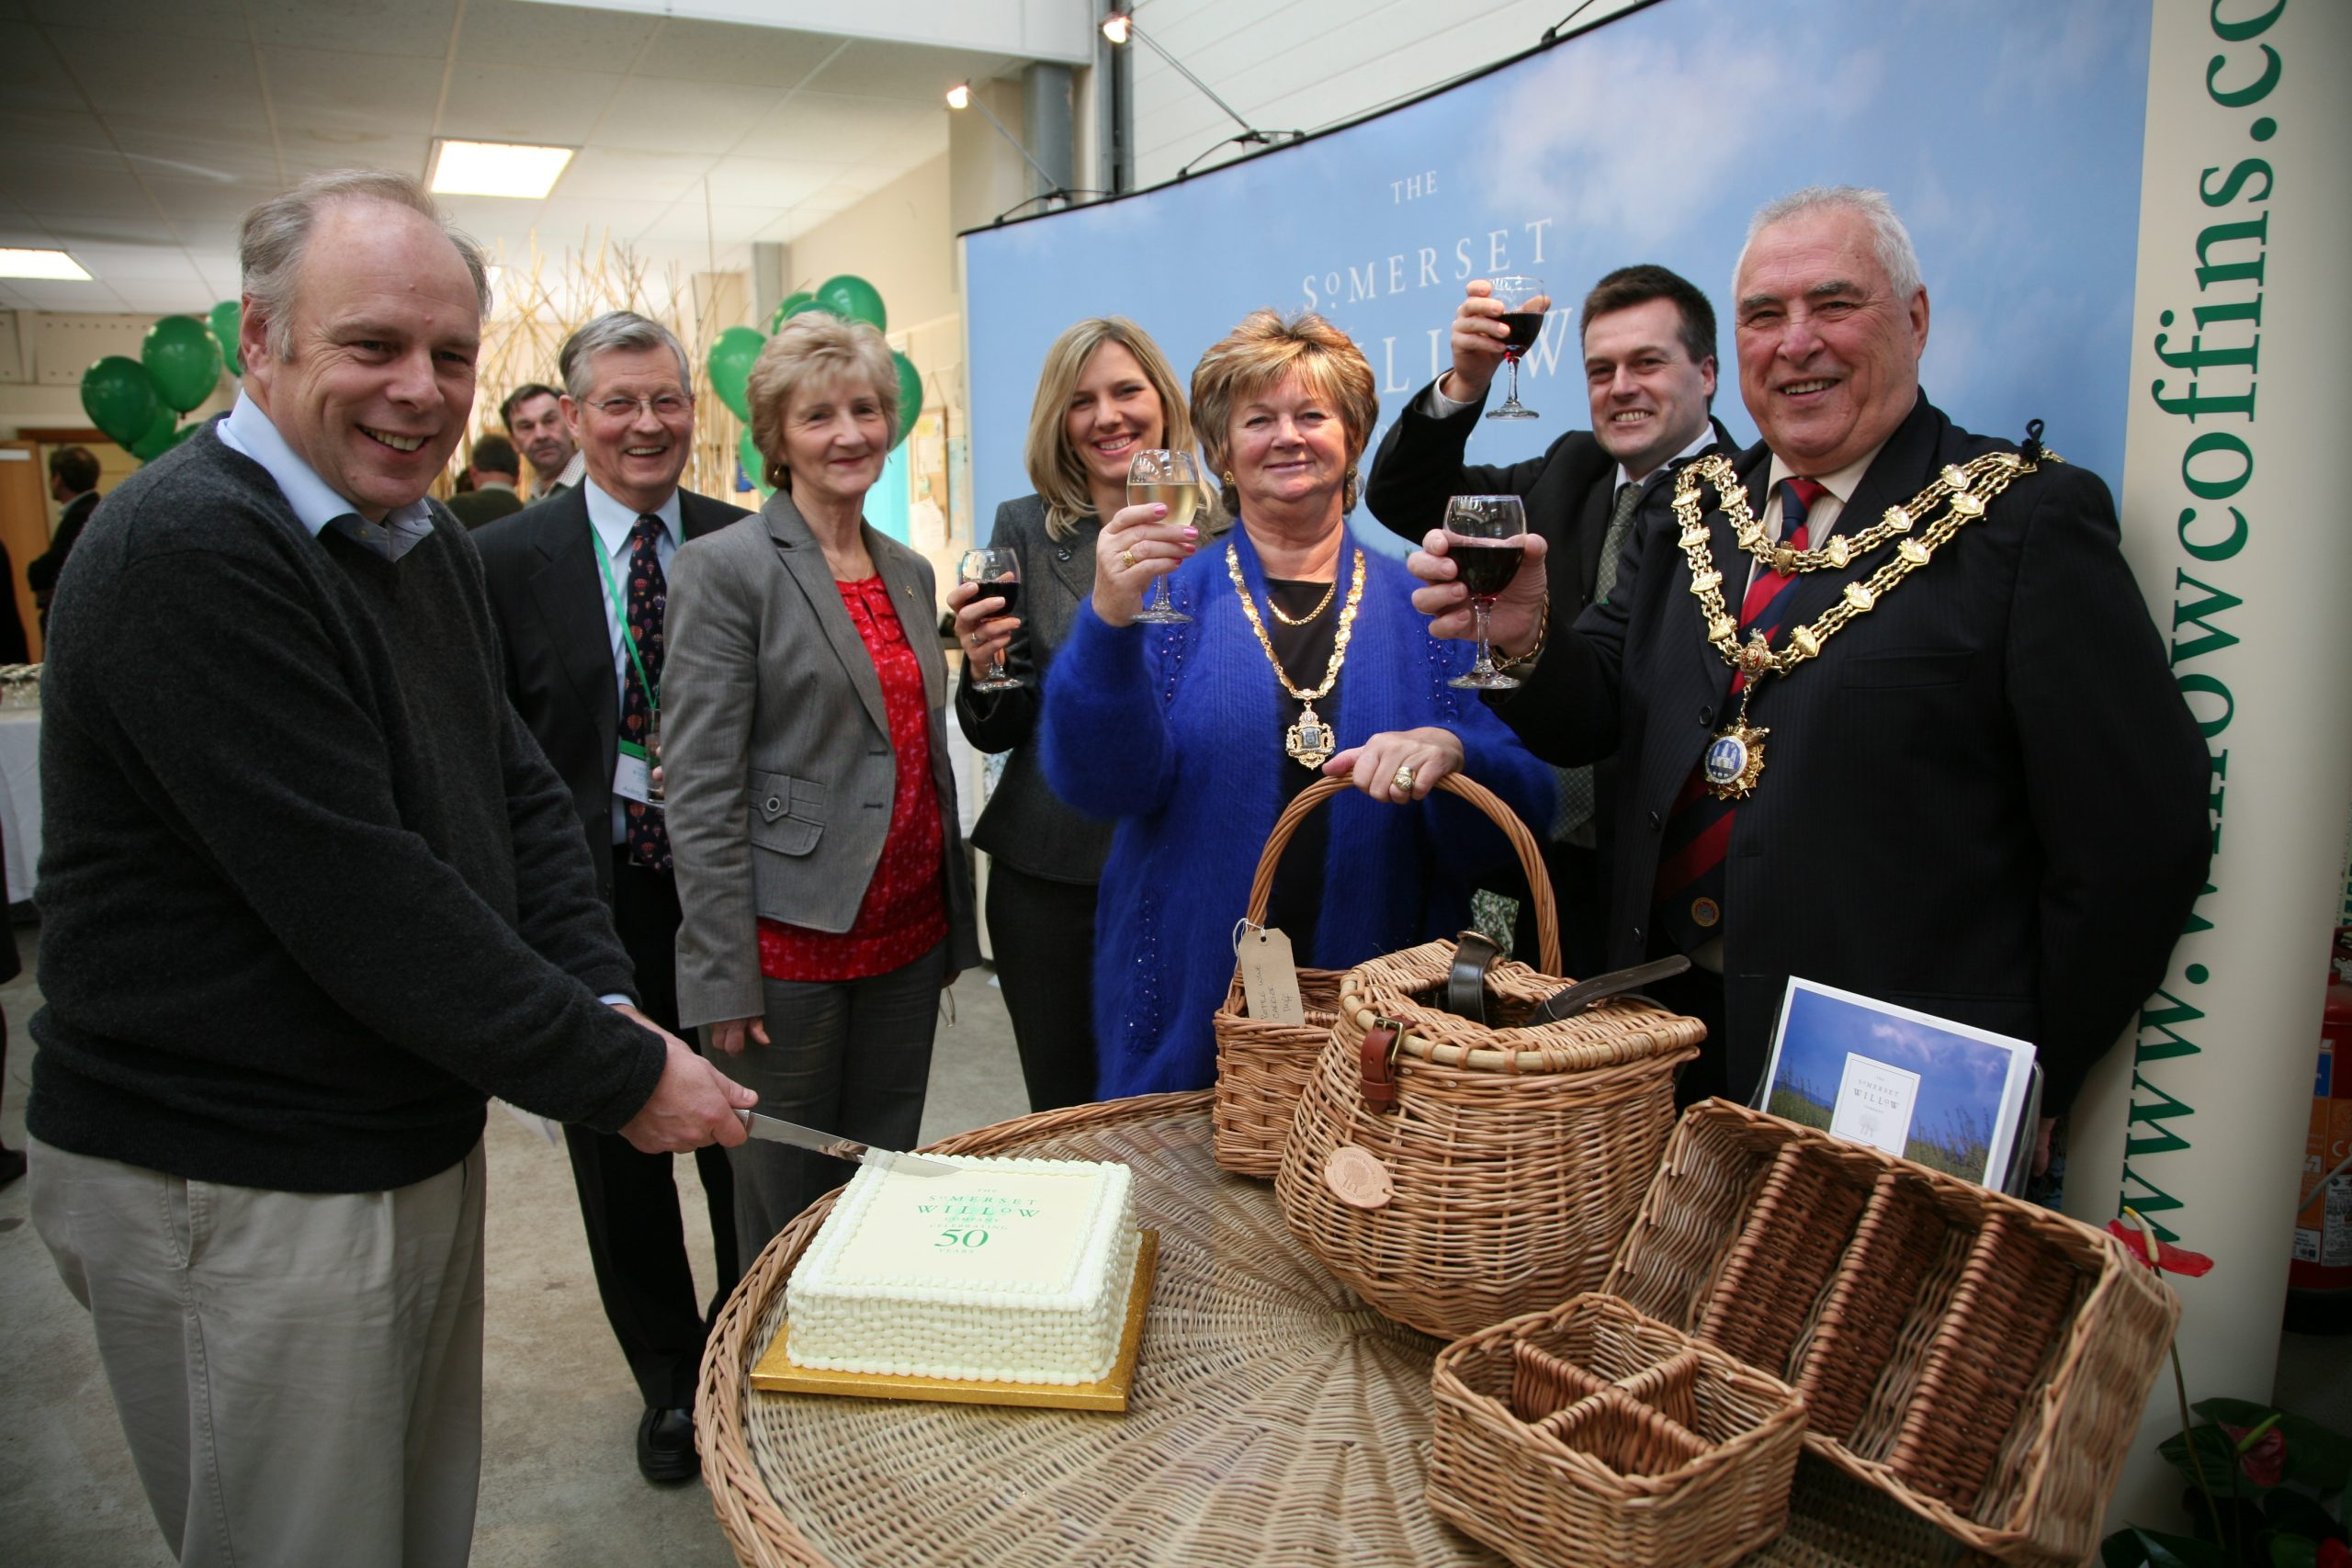 celebrations for Somerset Willow's 50th Anniversary